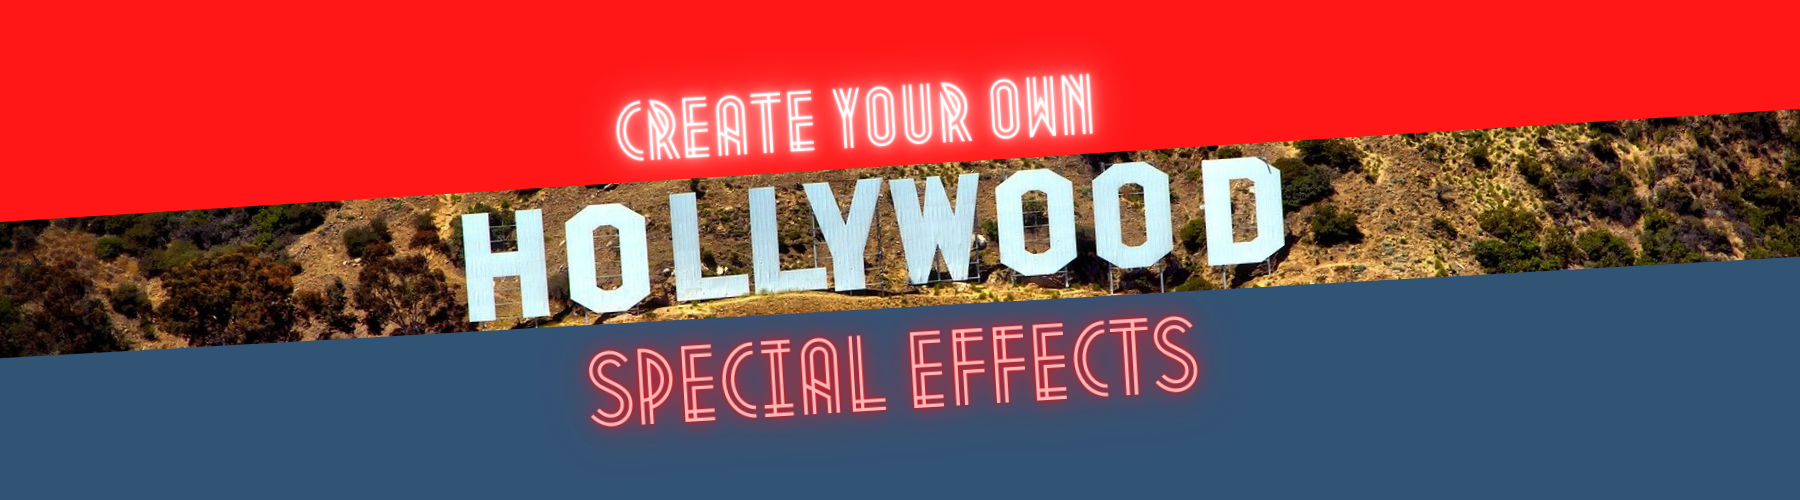 Create Your Own Hollywood Special Effects